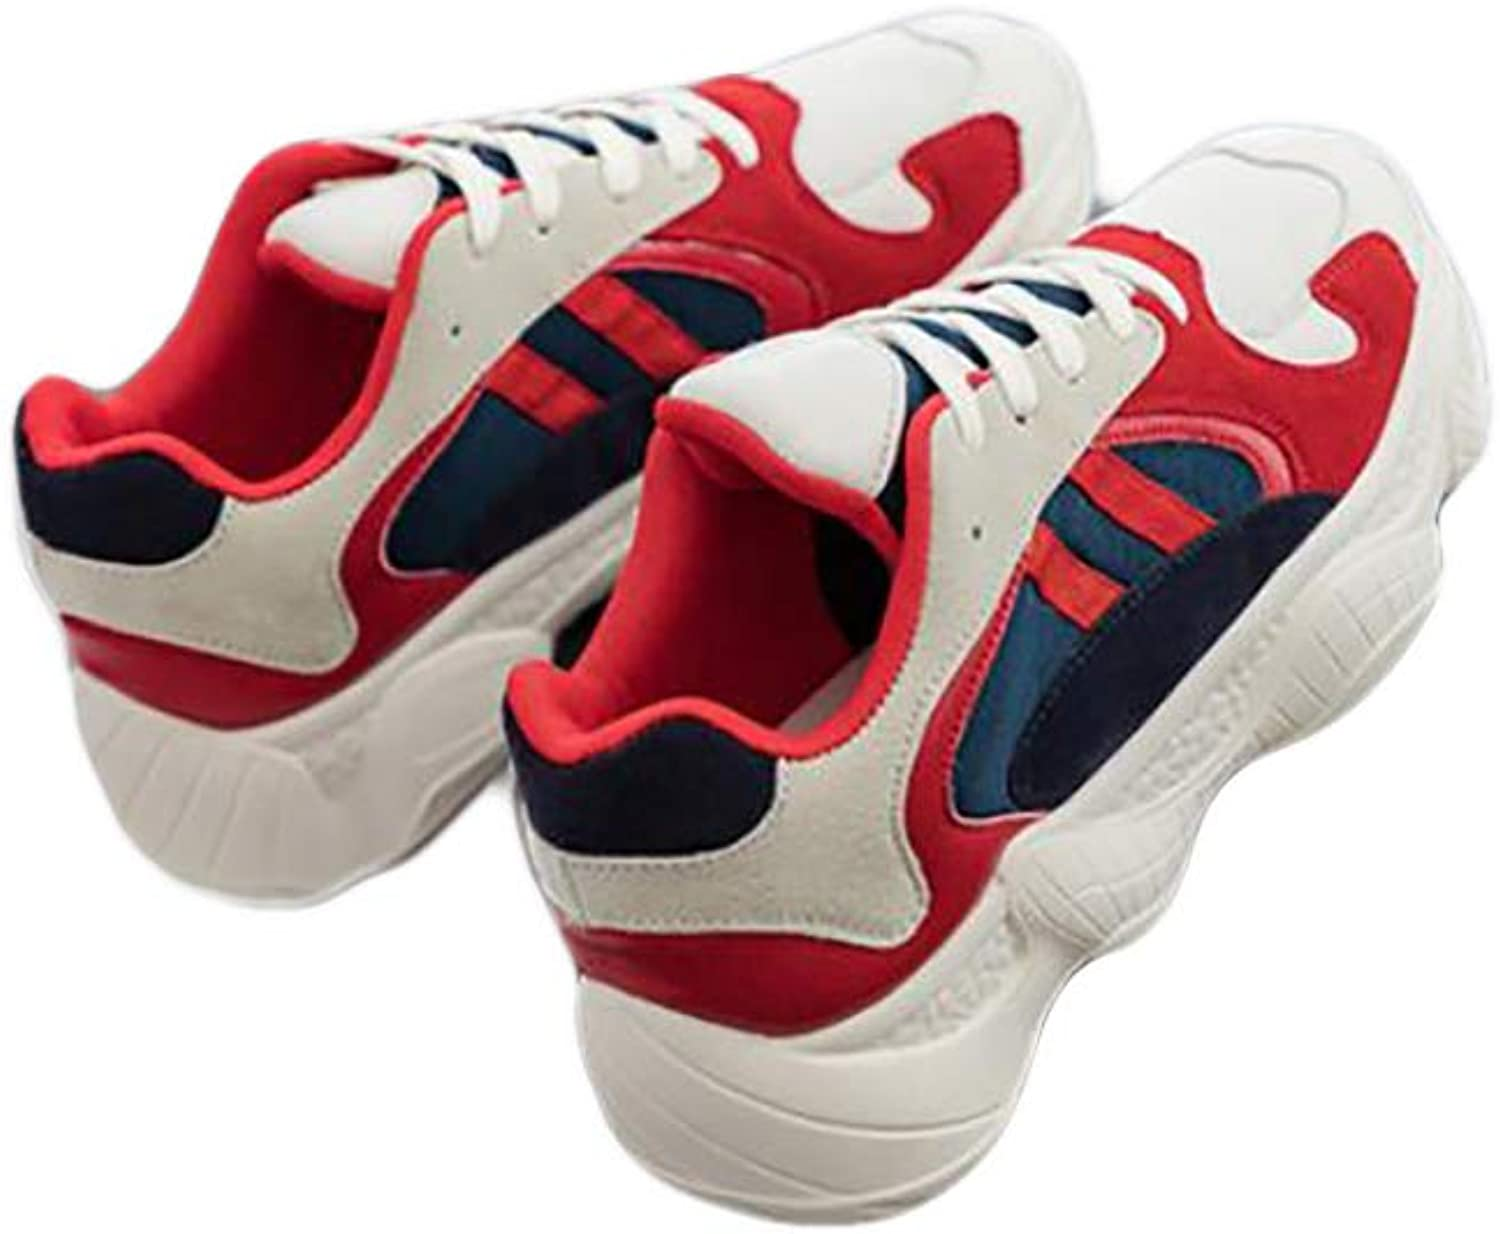 Rcnry Female, Running, Super fire, Sneakers Red